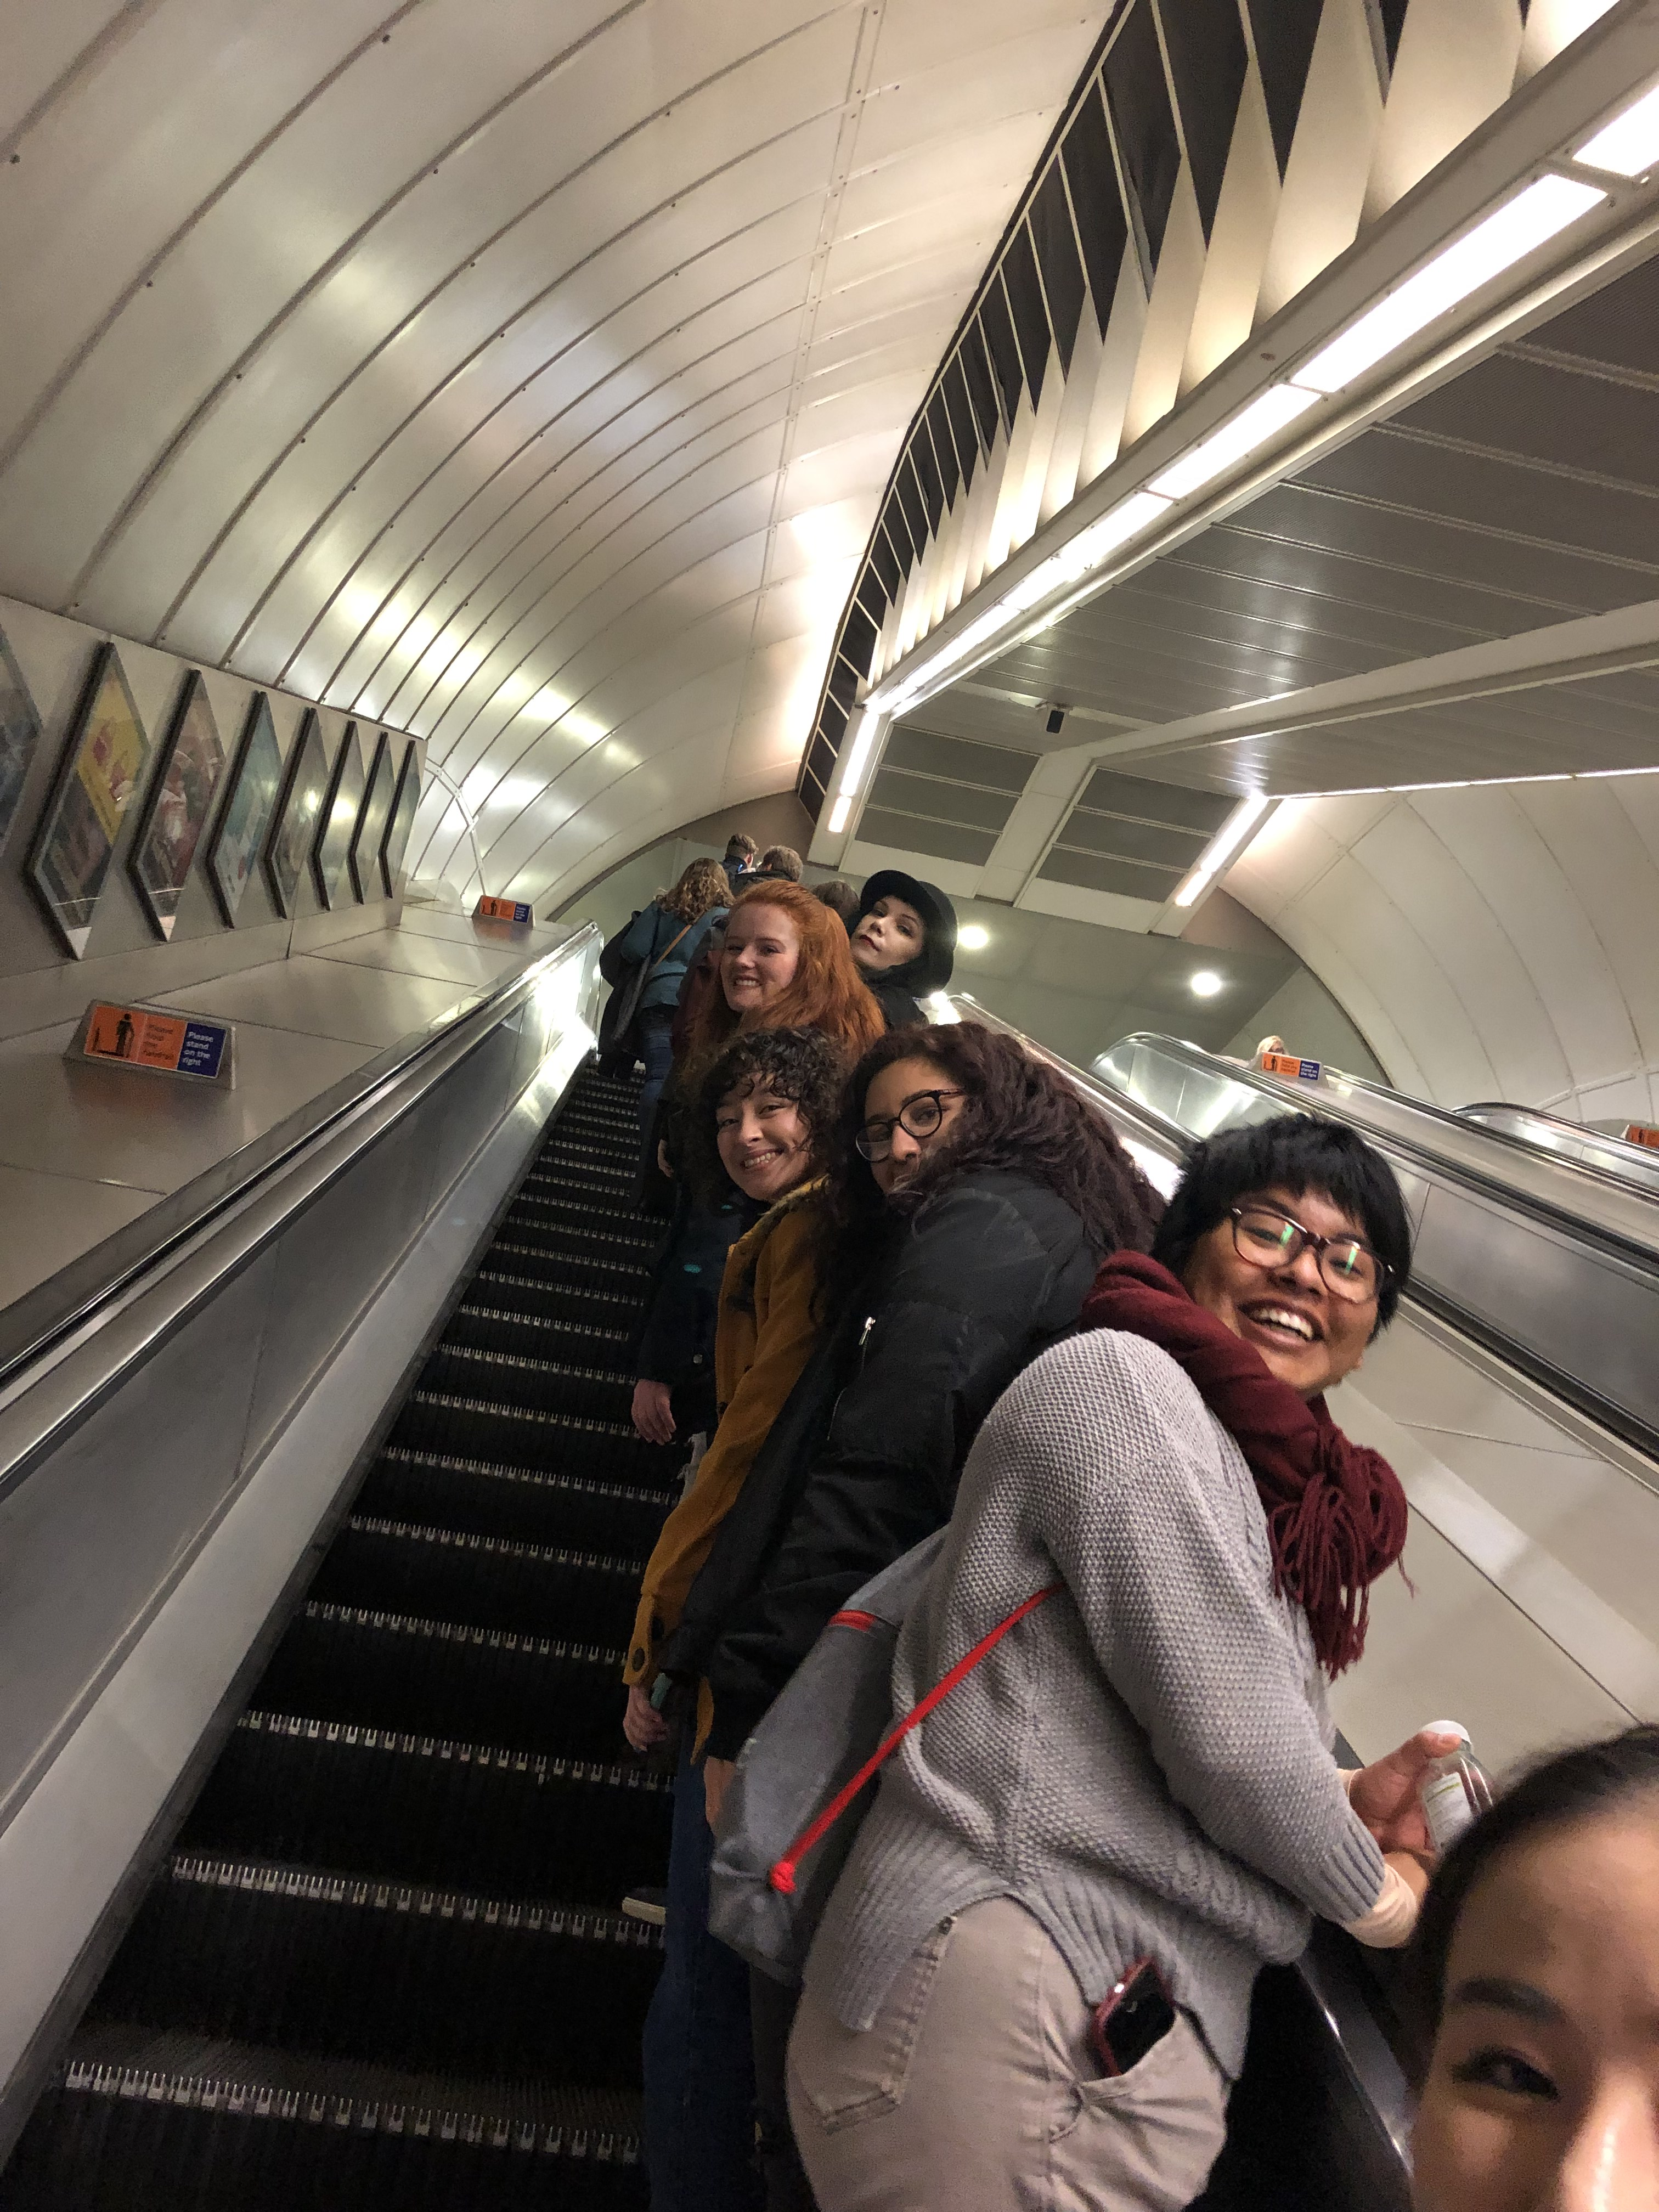 The London Tube. Students learned quickly that you stand on the right and walk on the left.